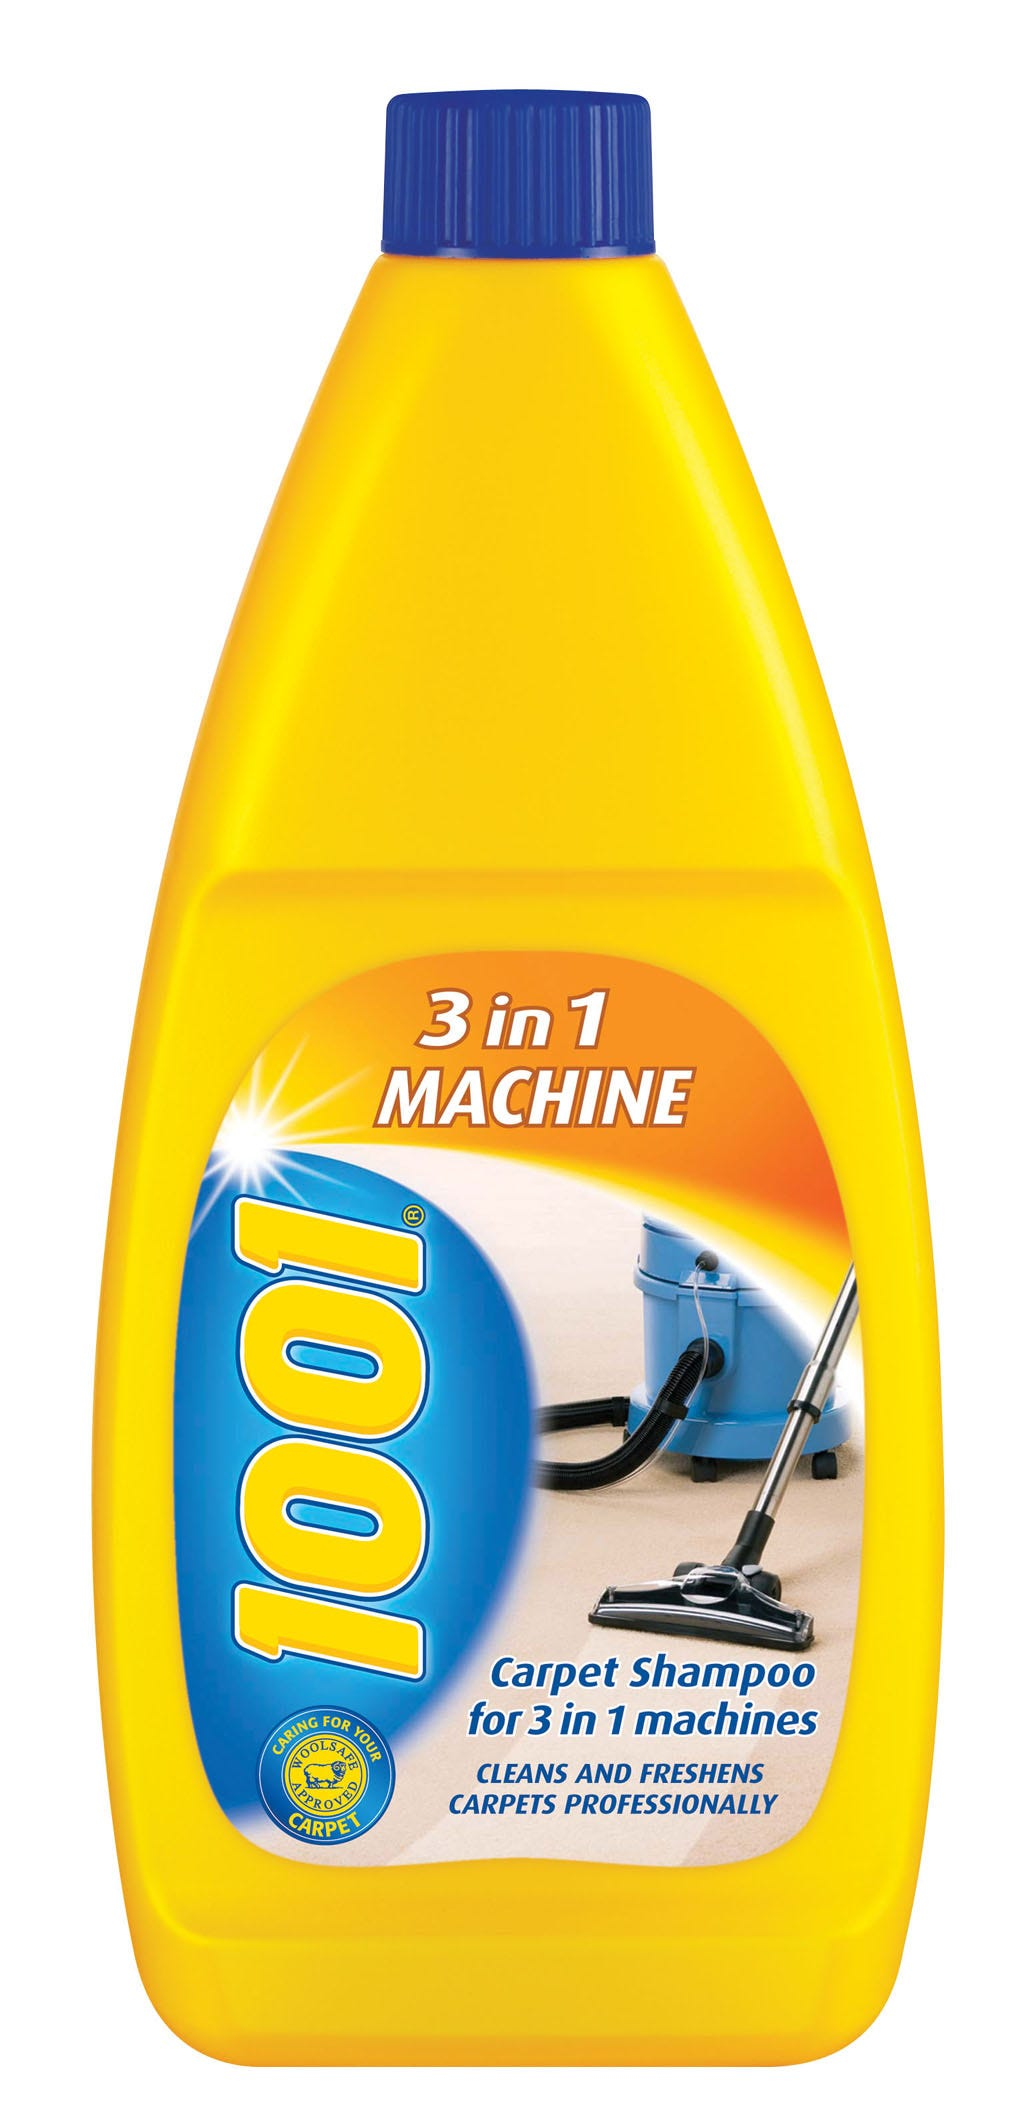 1001 3 in 1 Machine 500ml